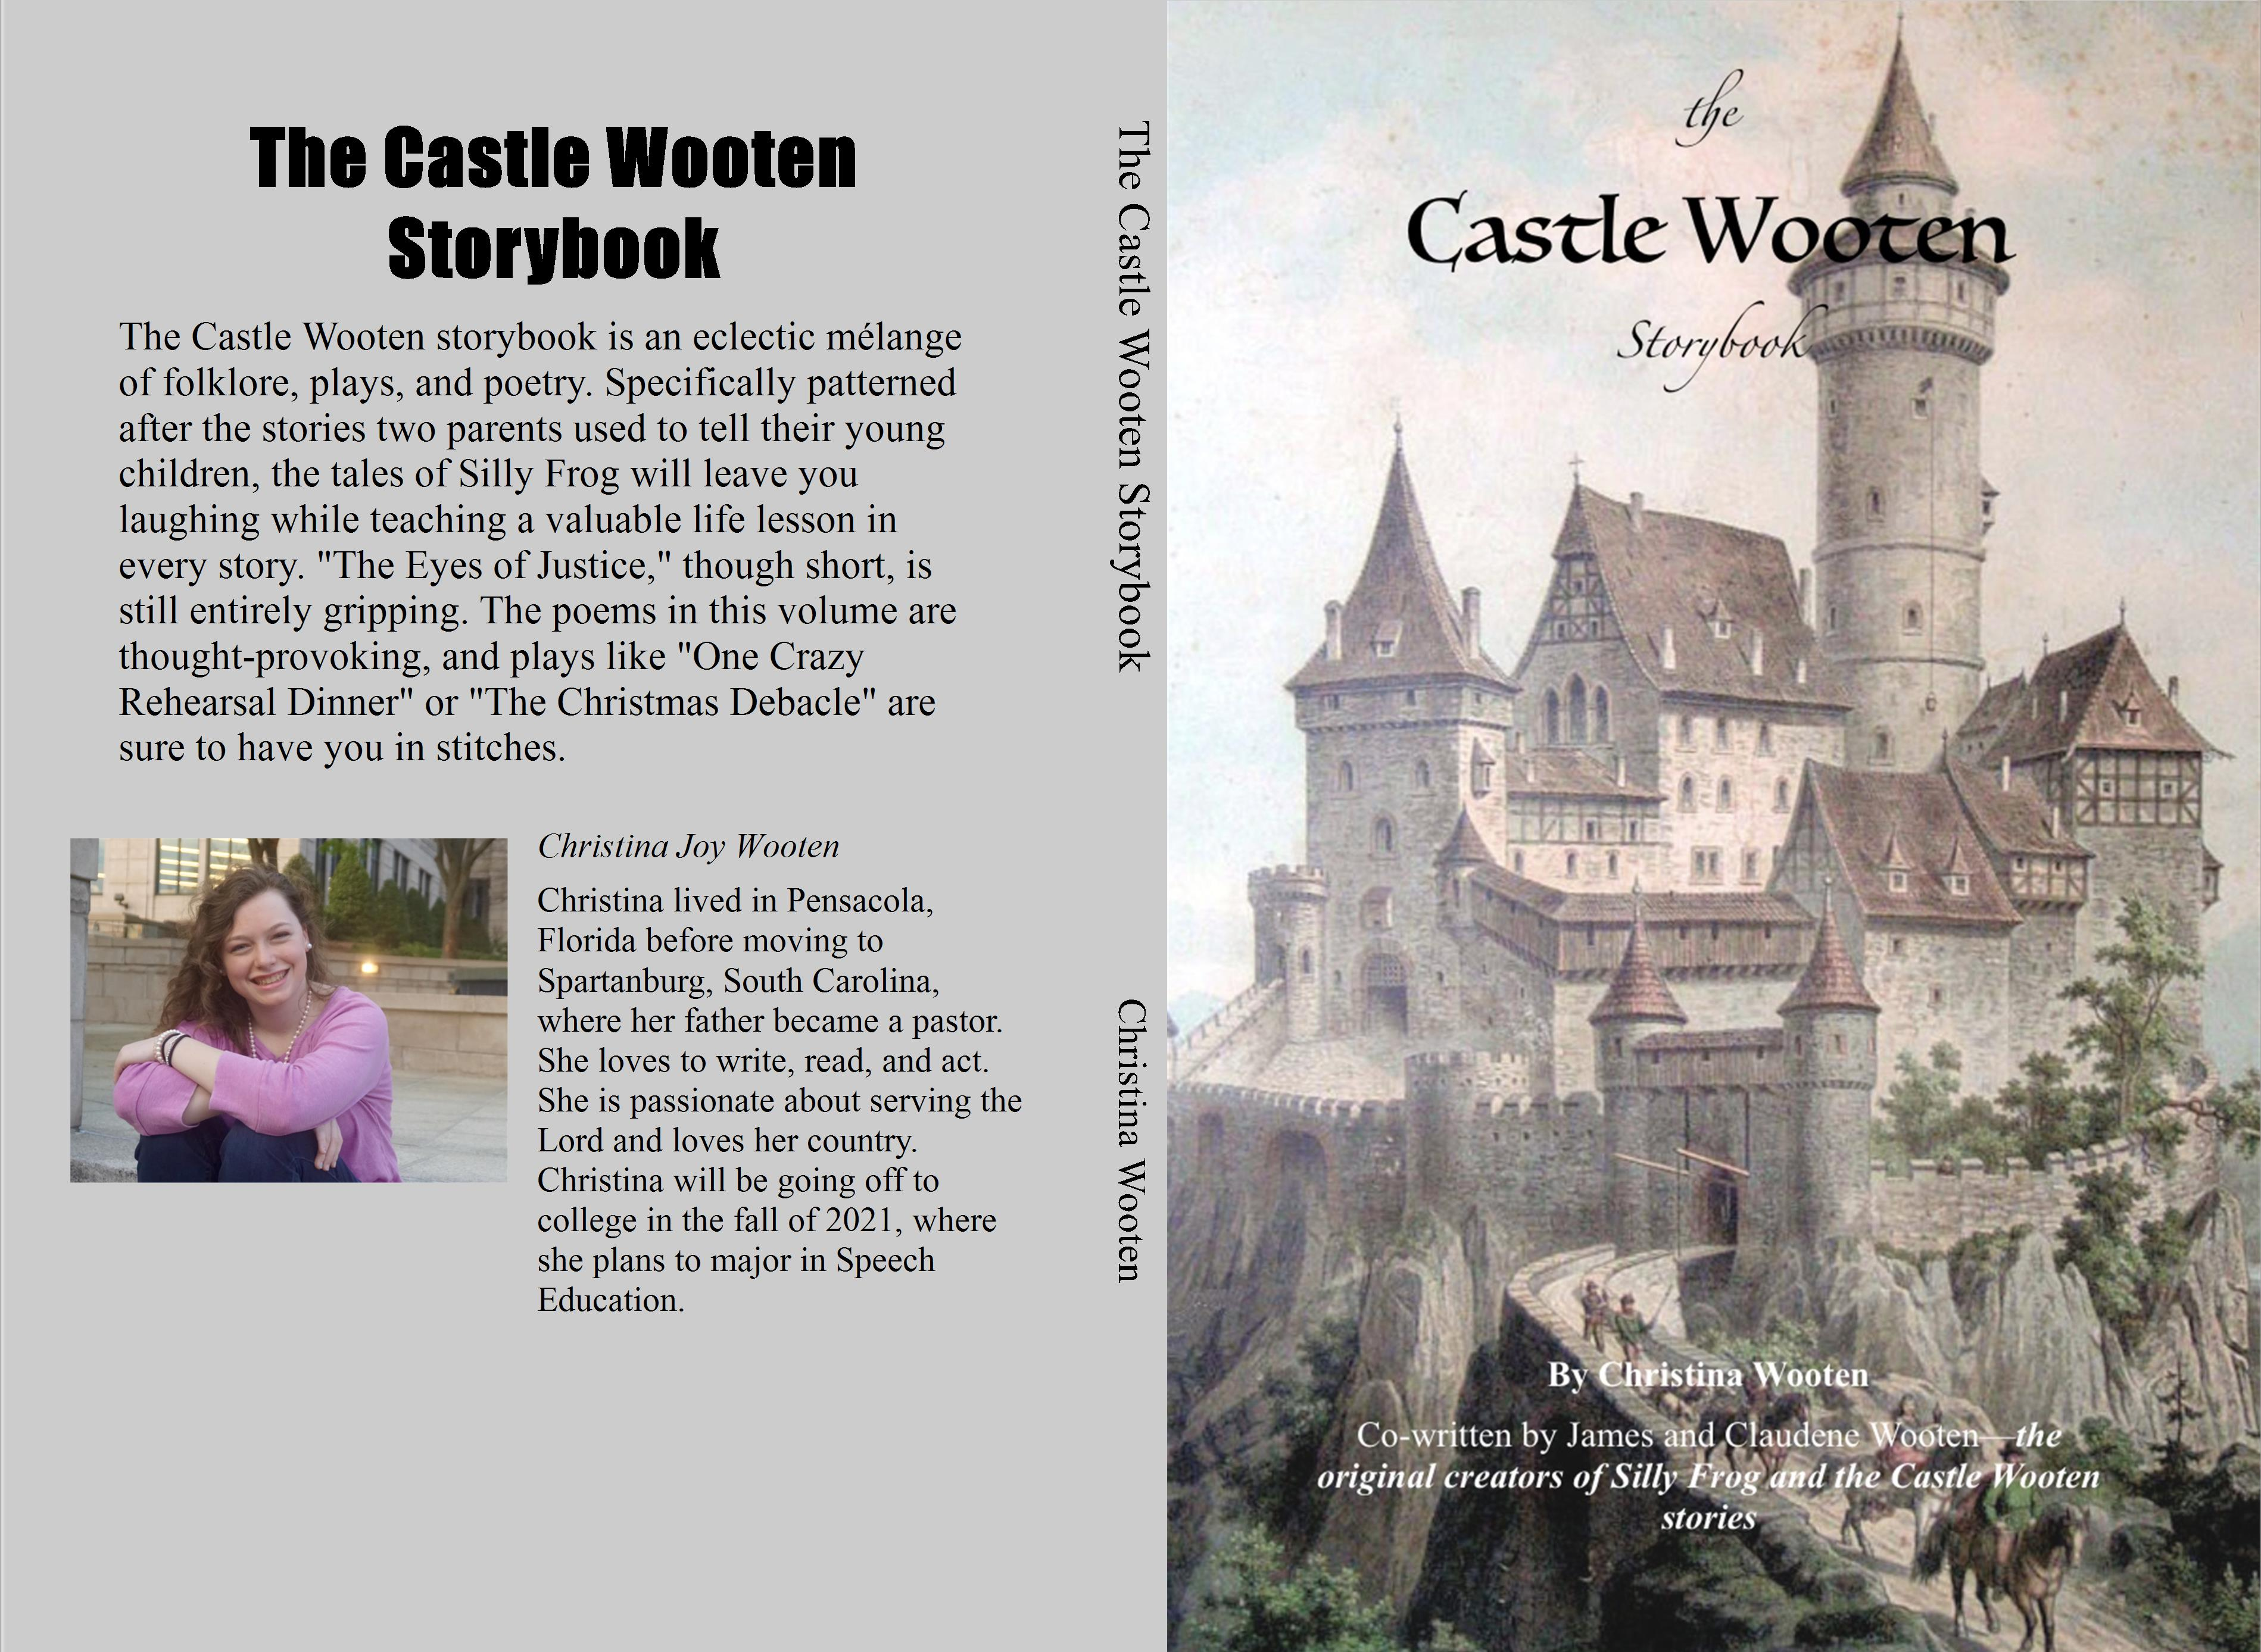 The Castle Wooten Storybook cover image